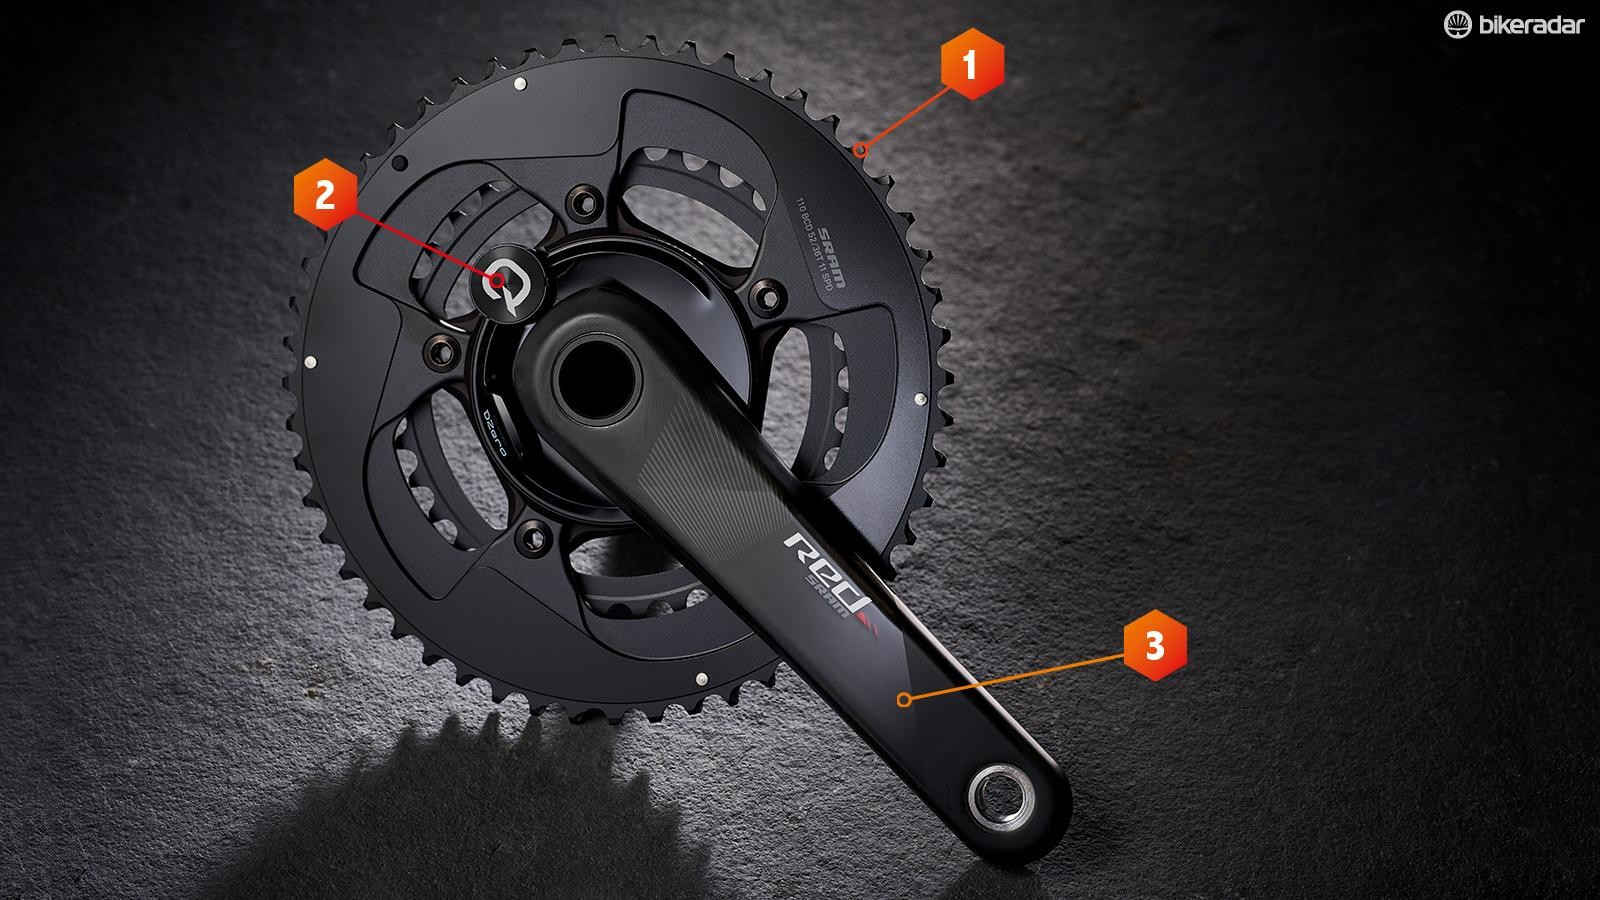 The Red Quarq DZero from SRAM